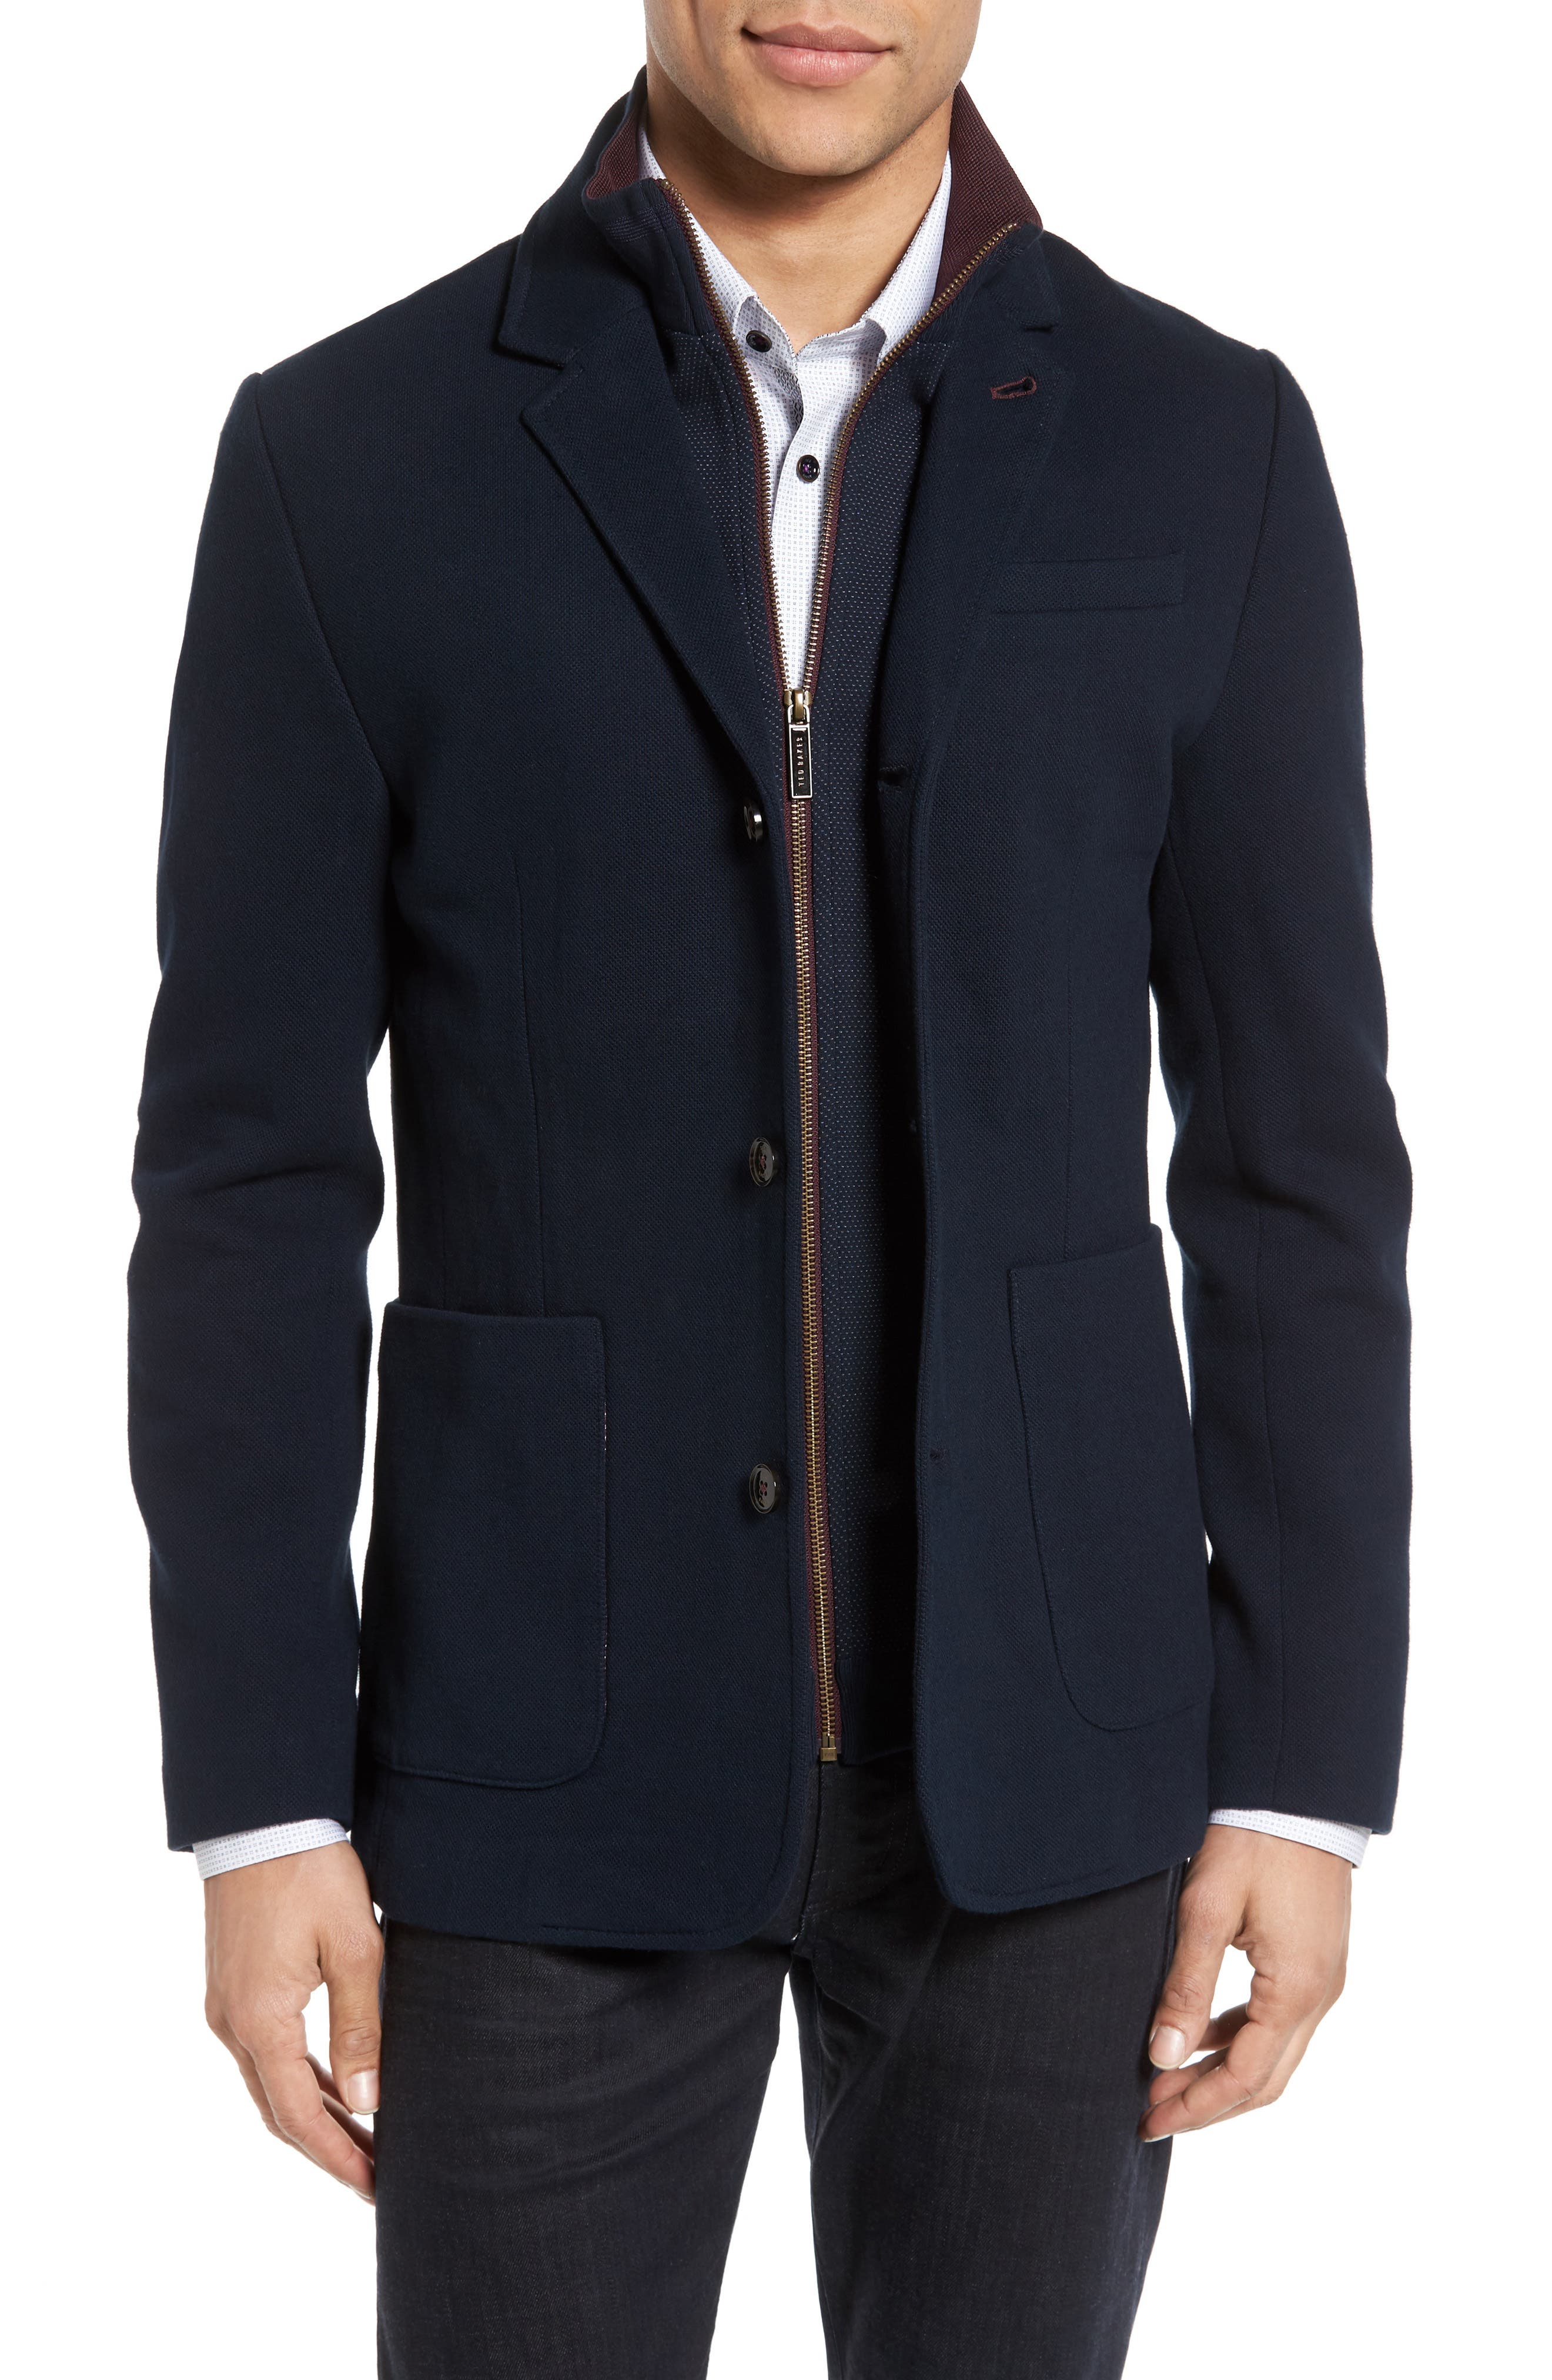 Knit Bib Inset Three-Button Jacket,                         Main,                         color, Navy